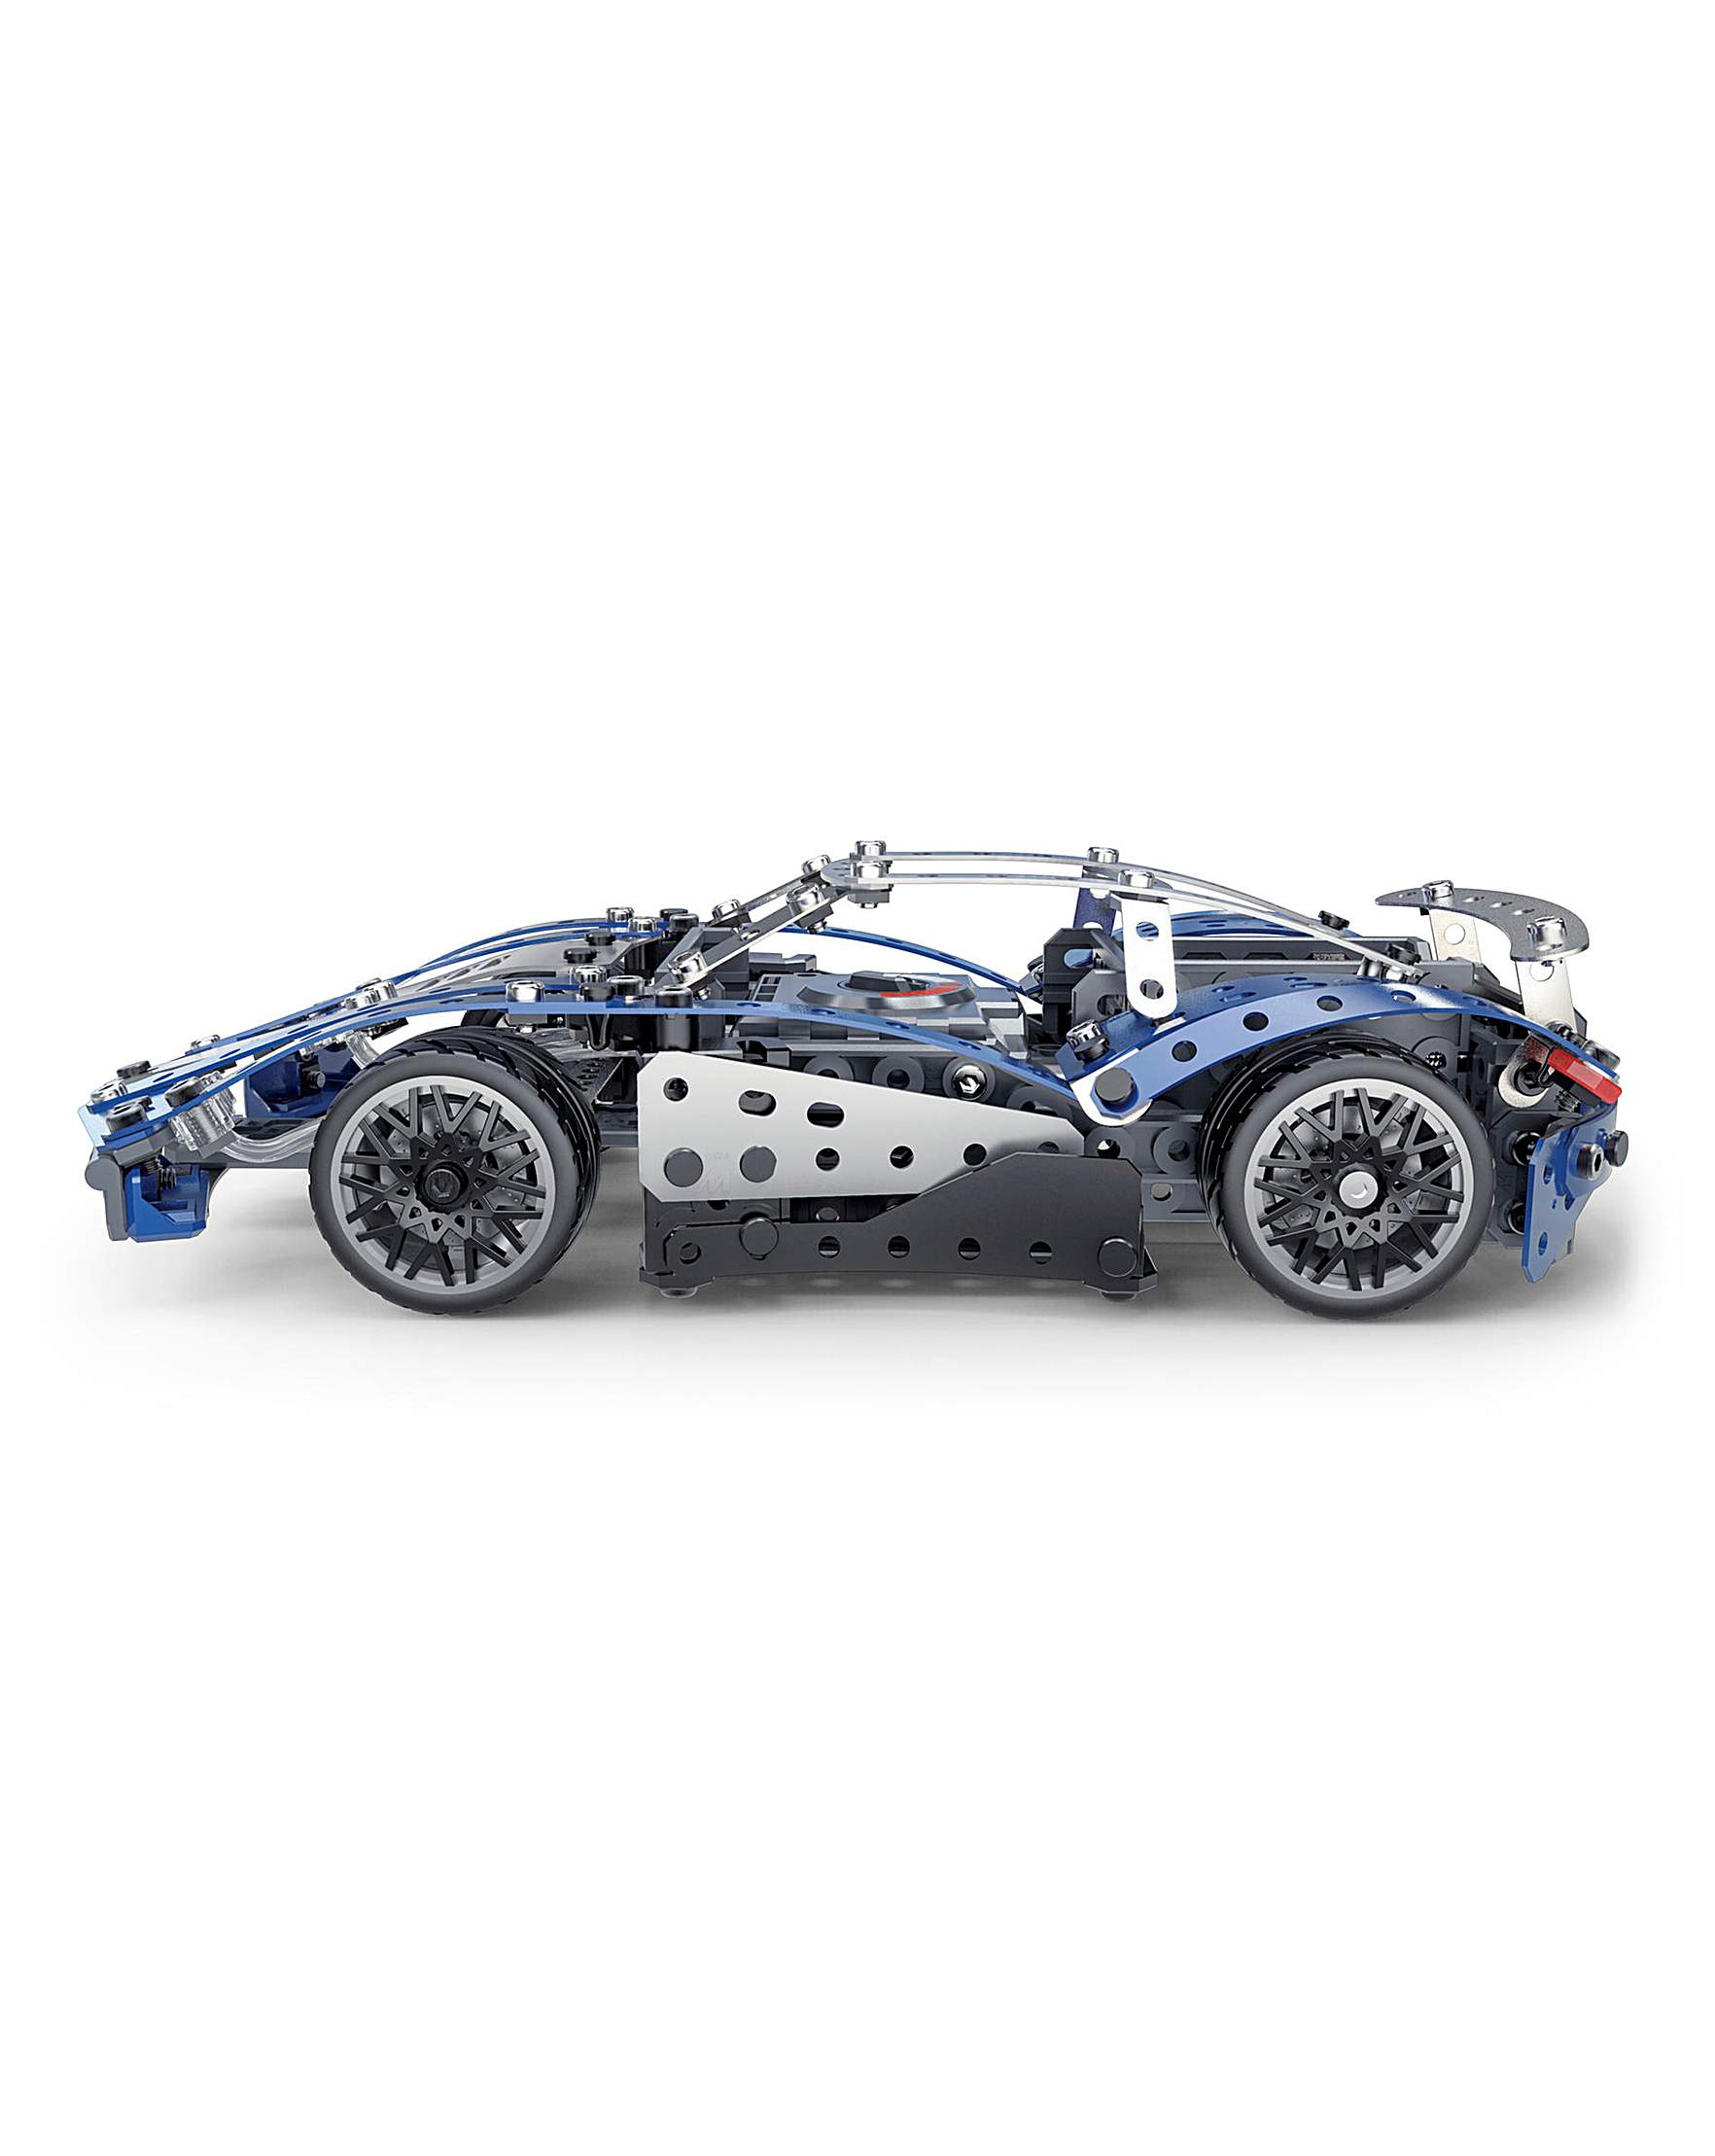 Meccano 25 Model Super Car J D Williams Control Your Models Or Anything Else From Windows Pc